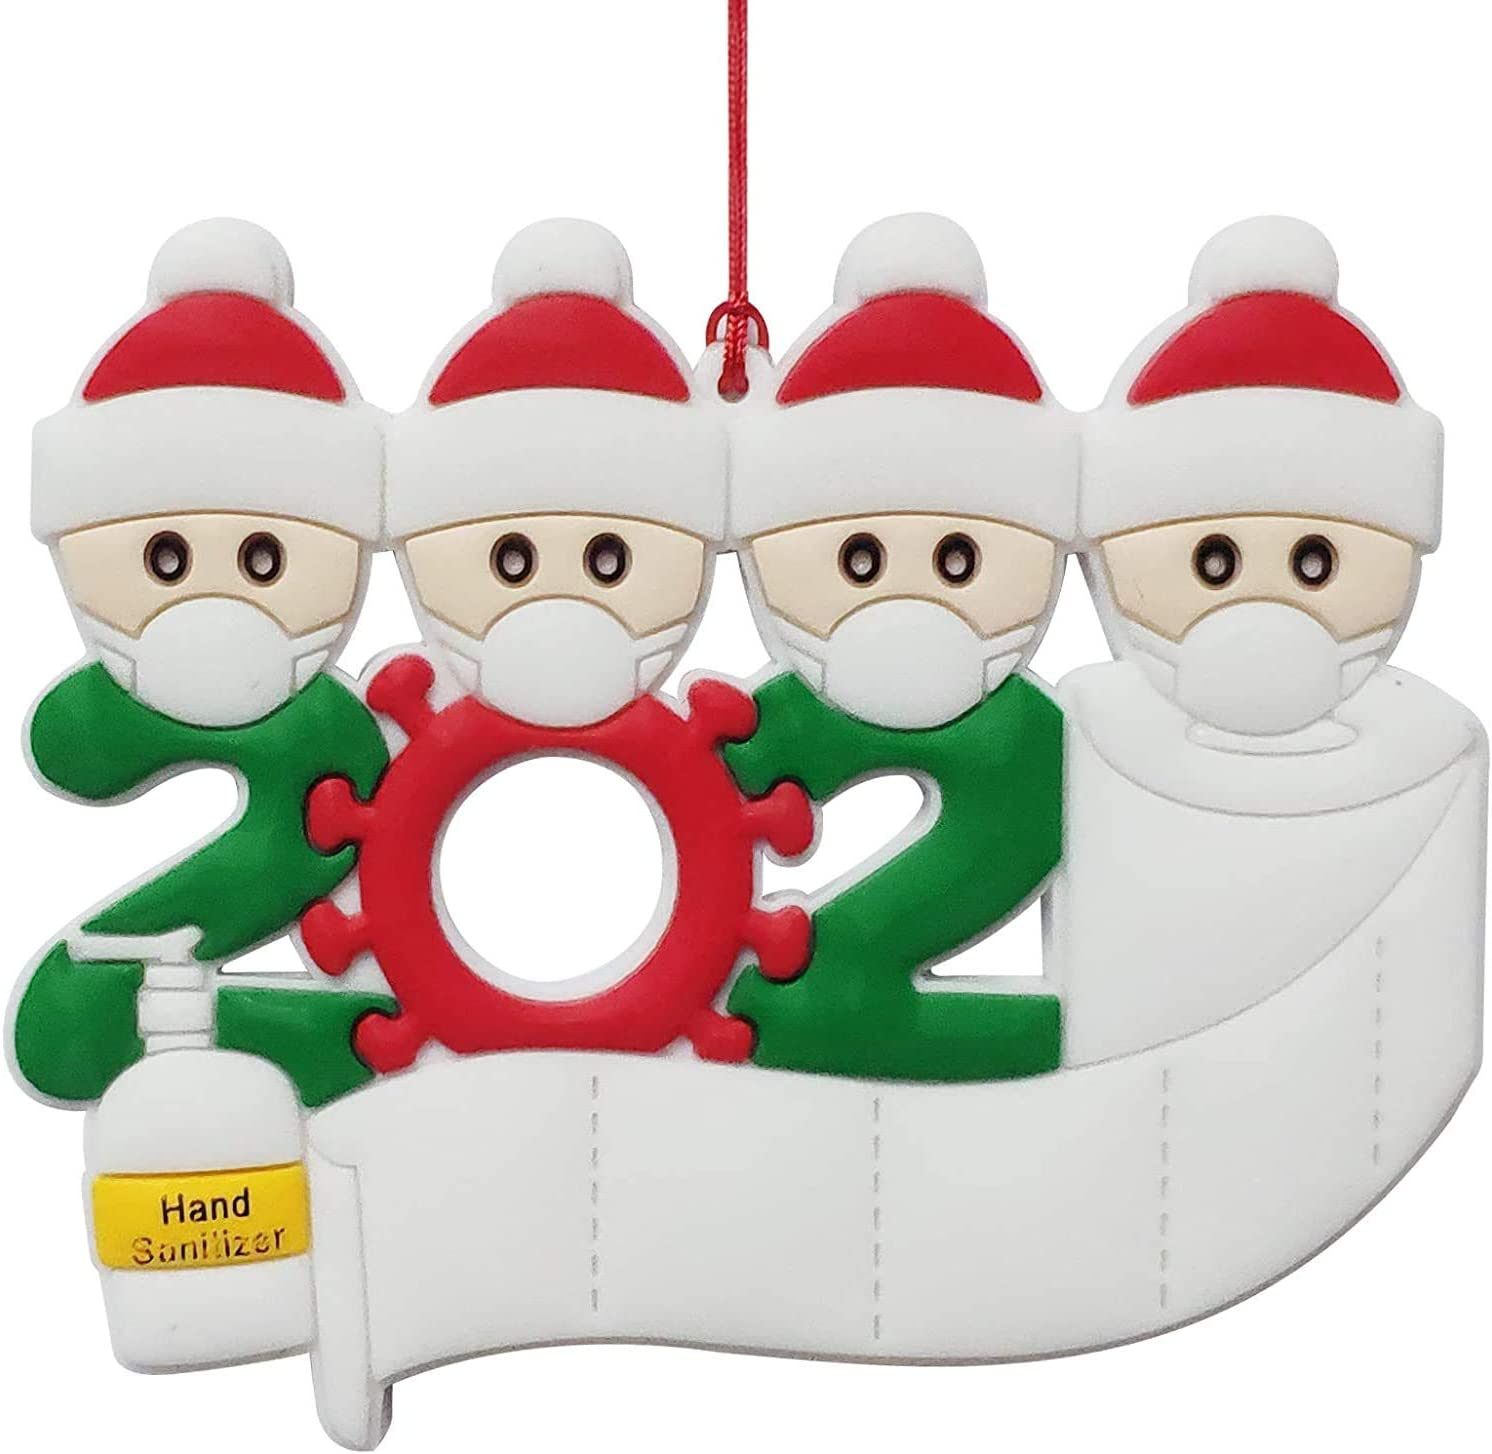 TBAO 2020 Personalized Family Challenge the lowest price Ornaments Ch Max 81% OFF Quarantine Christmas